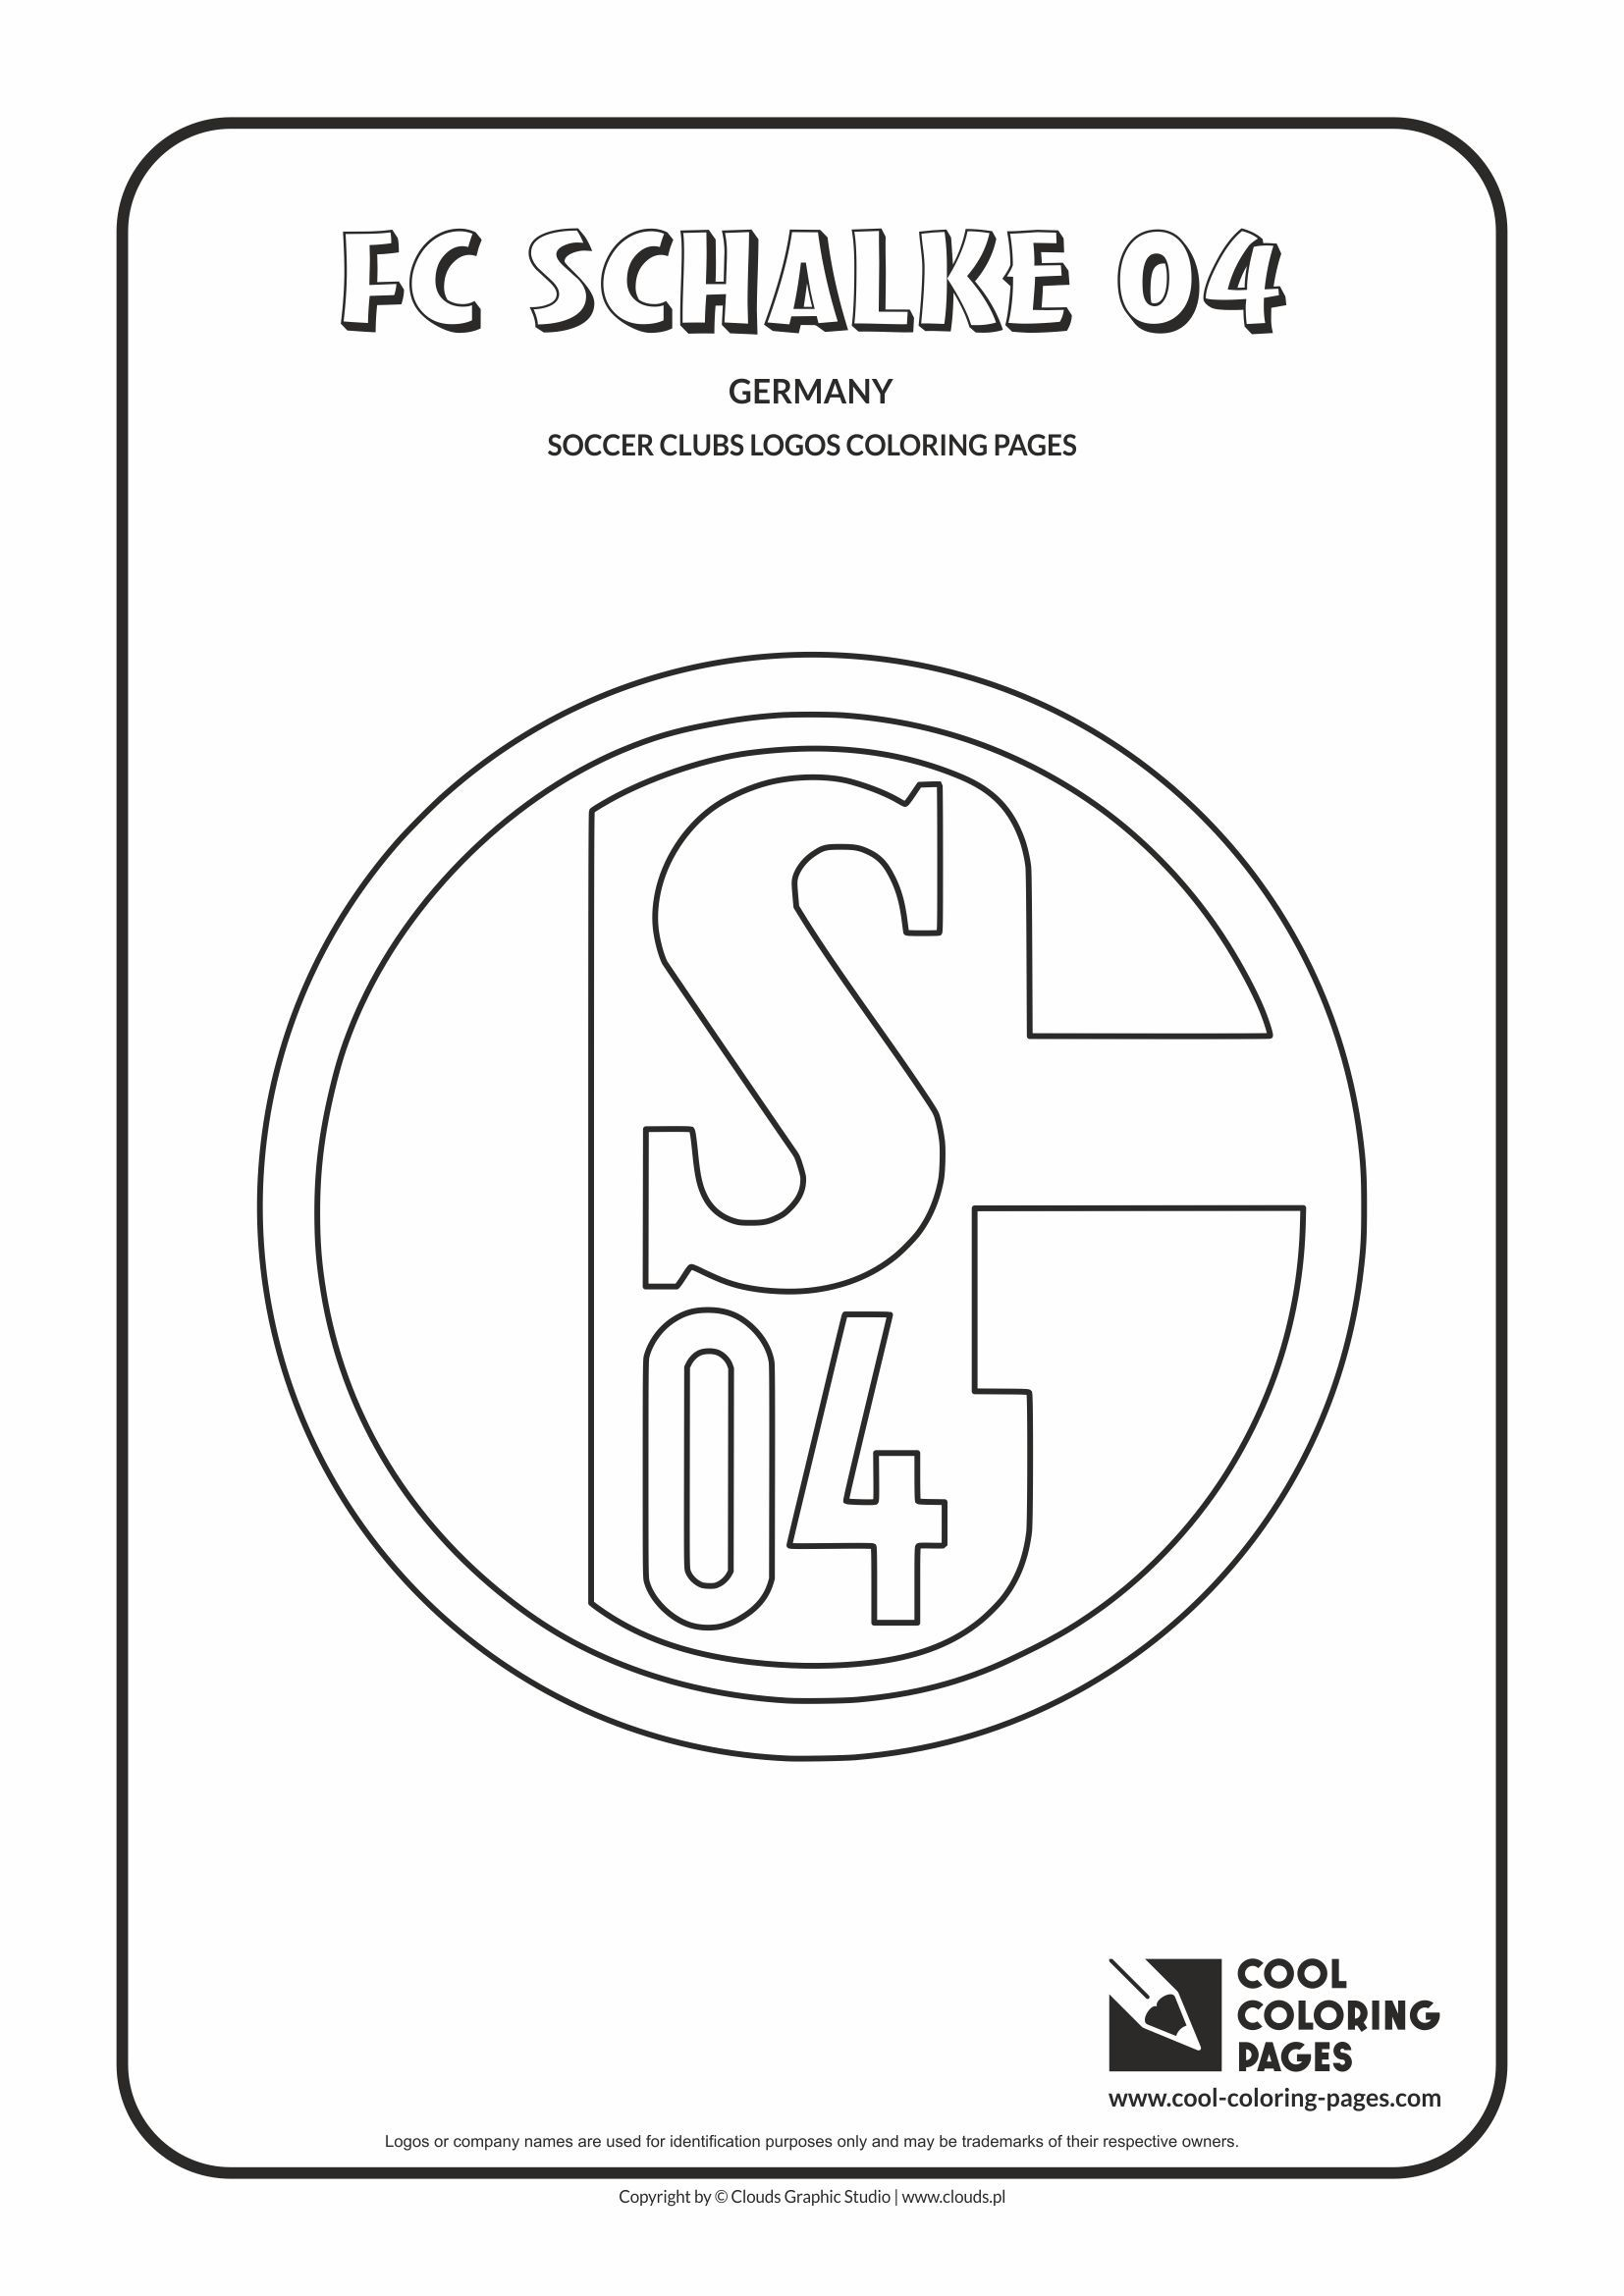 FC Schalke 04 logo coloring / Coloring page with FC